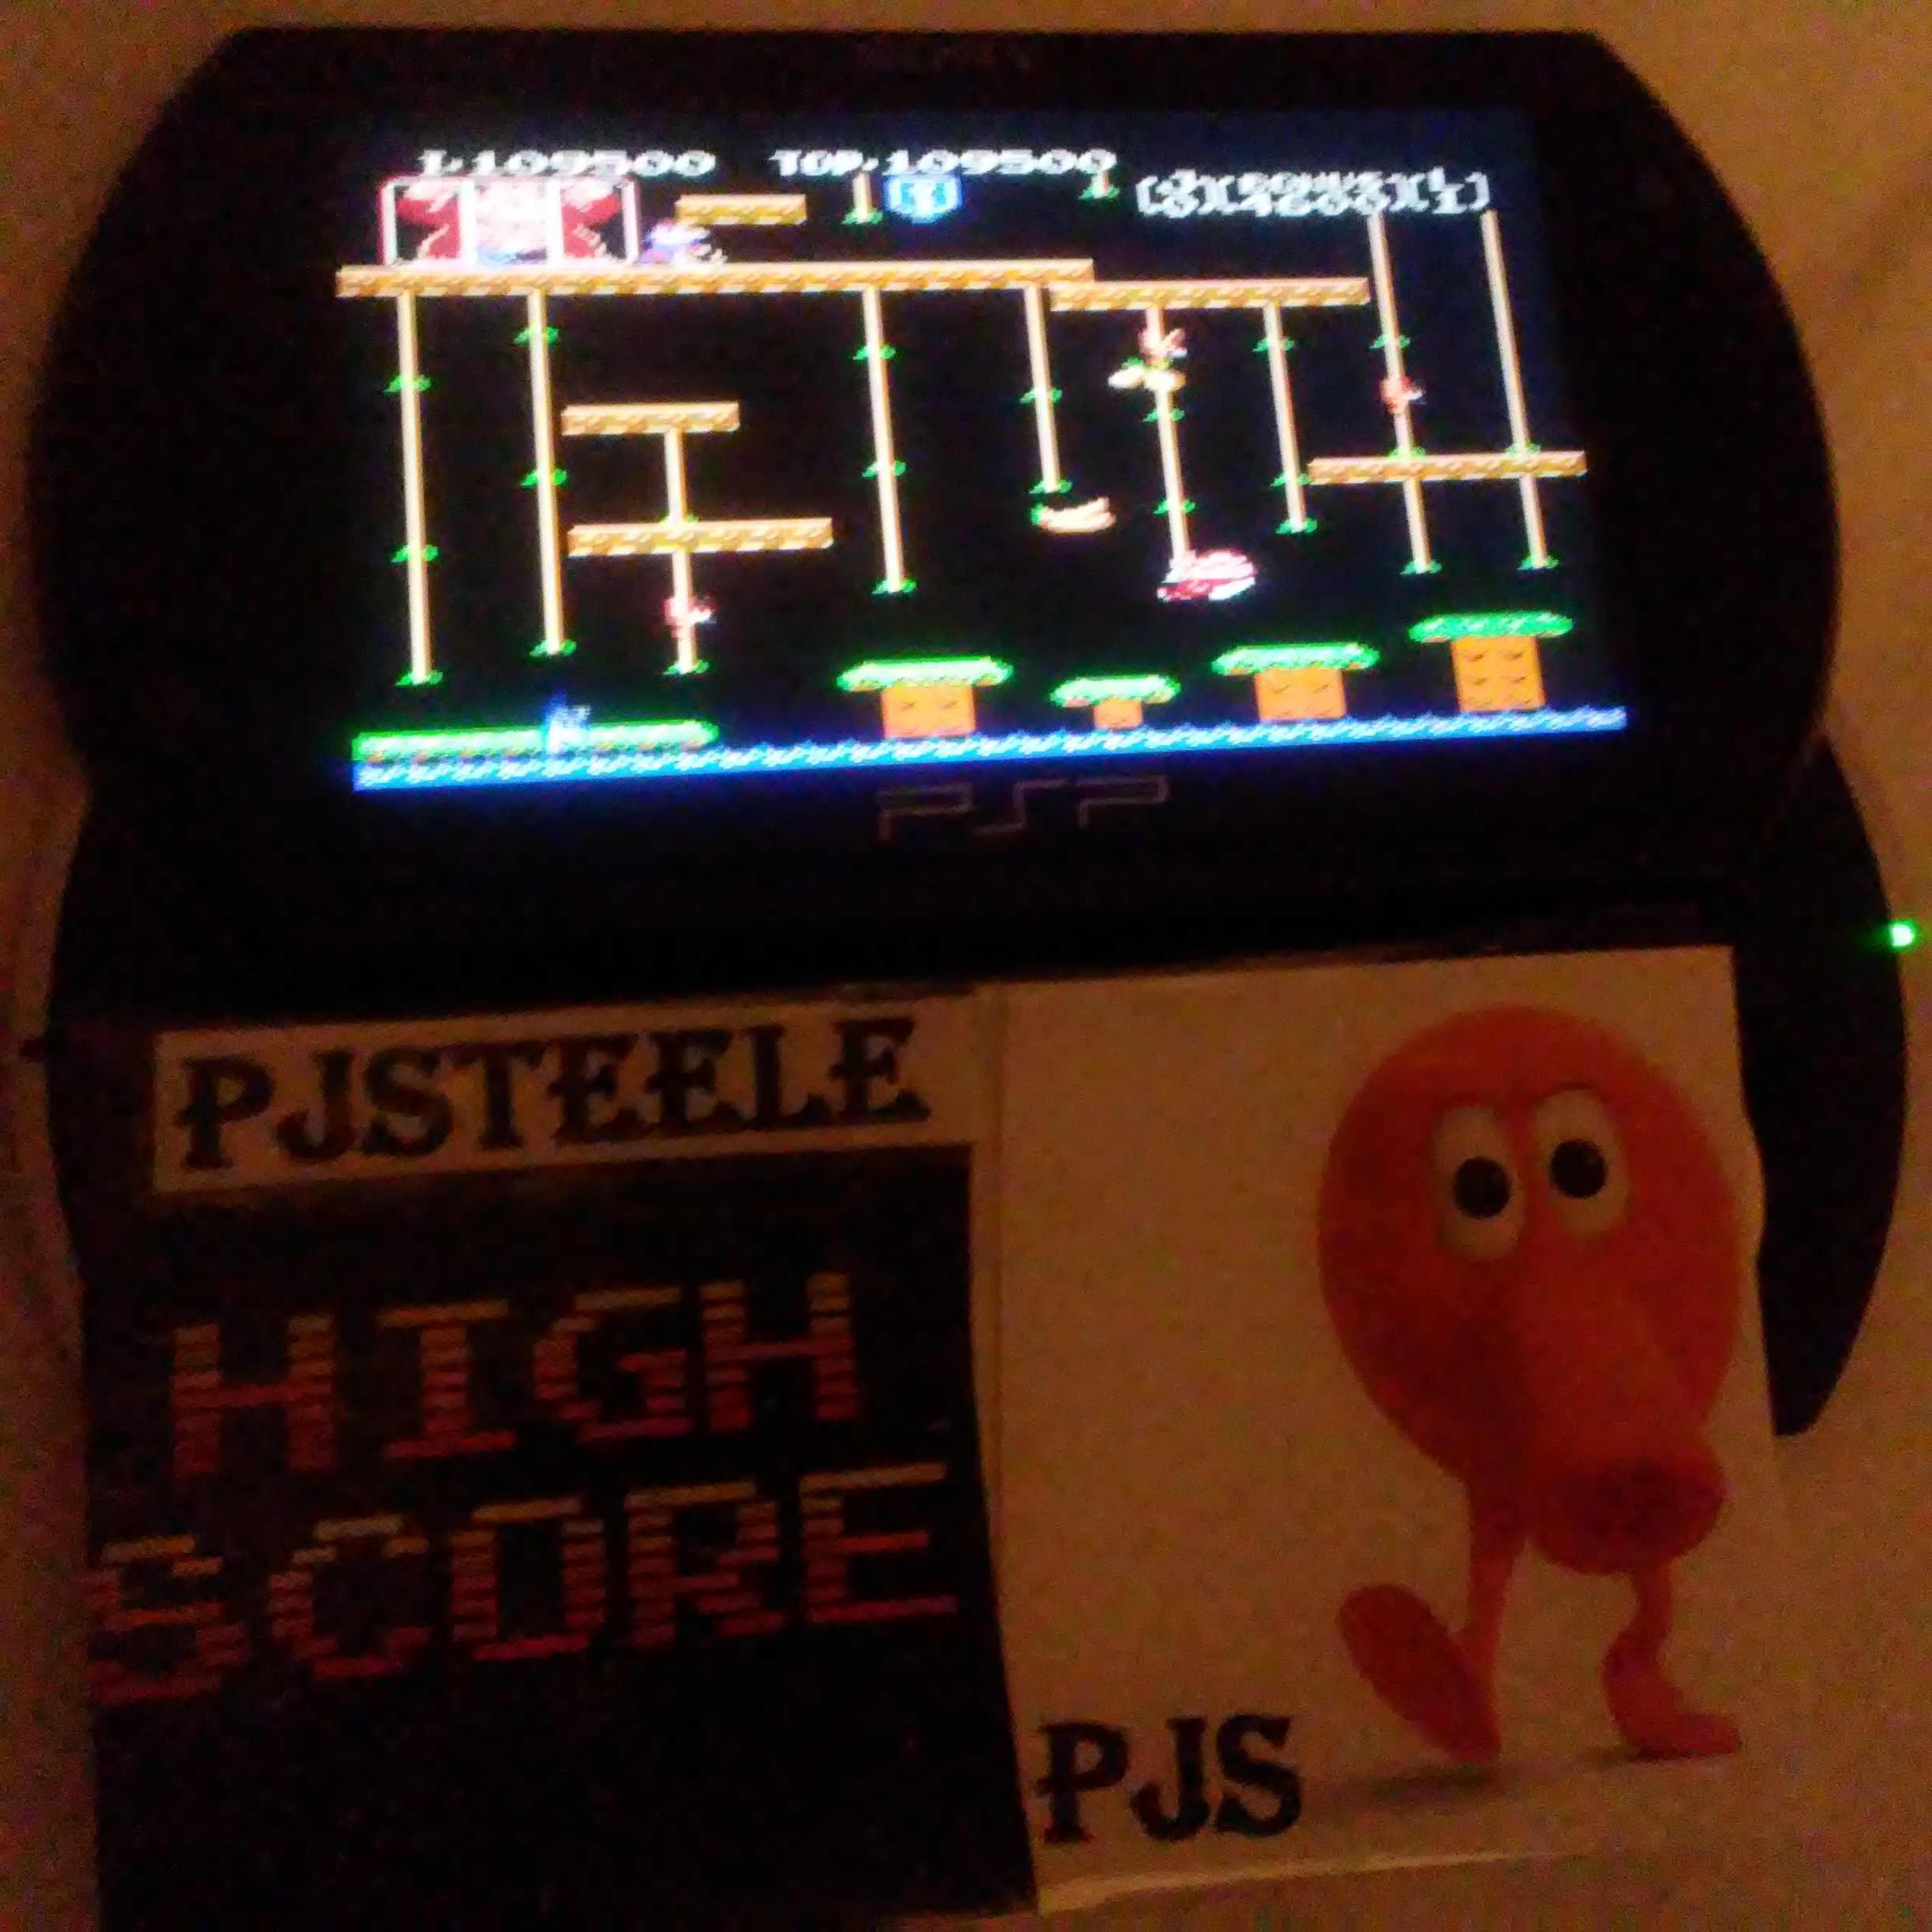 Pjsteele: Donkey Kong Jr (NES/Famicom Emulated) 109,500 points on 2018-02-01 21:49:48